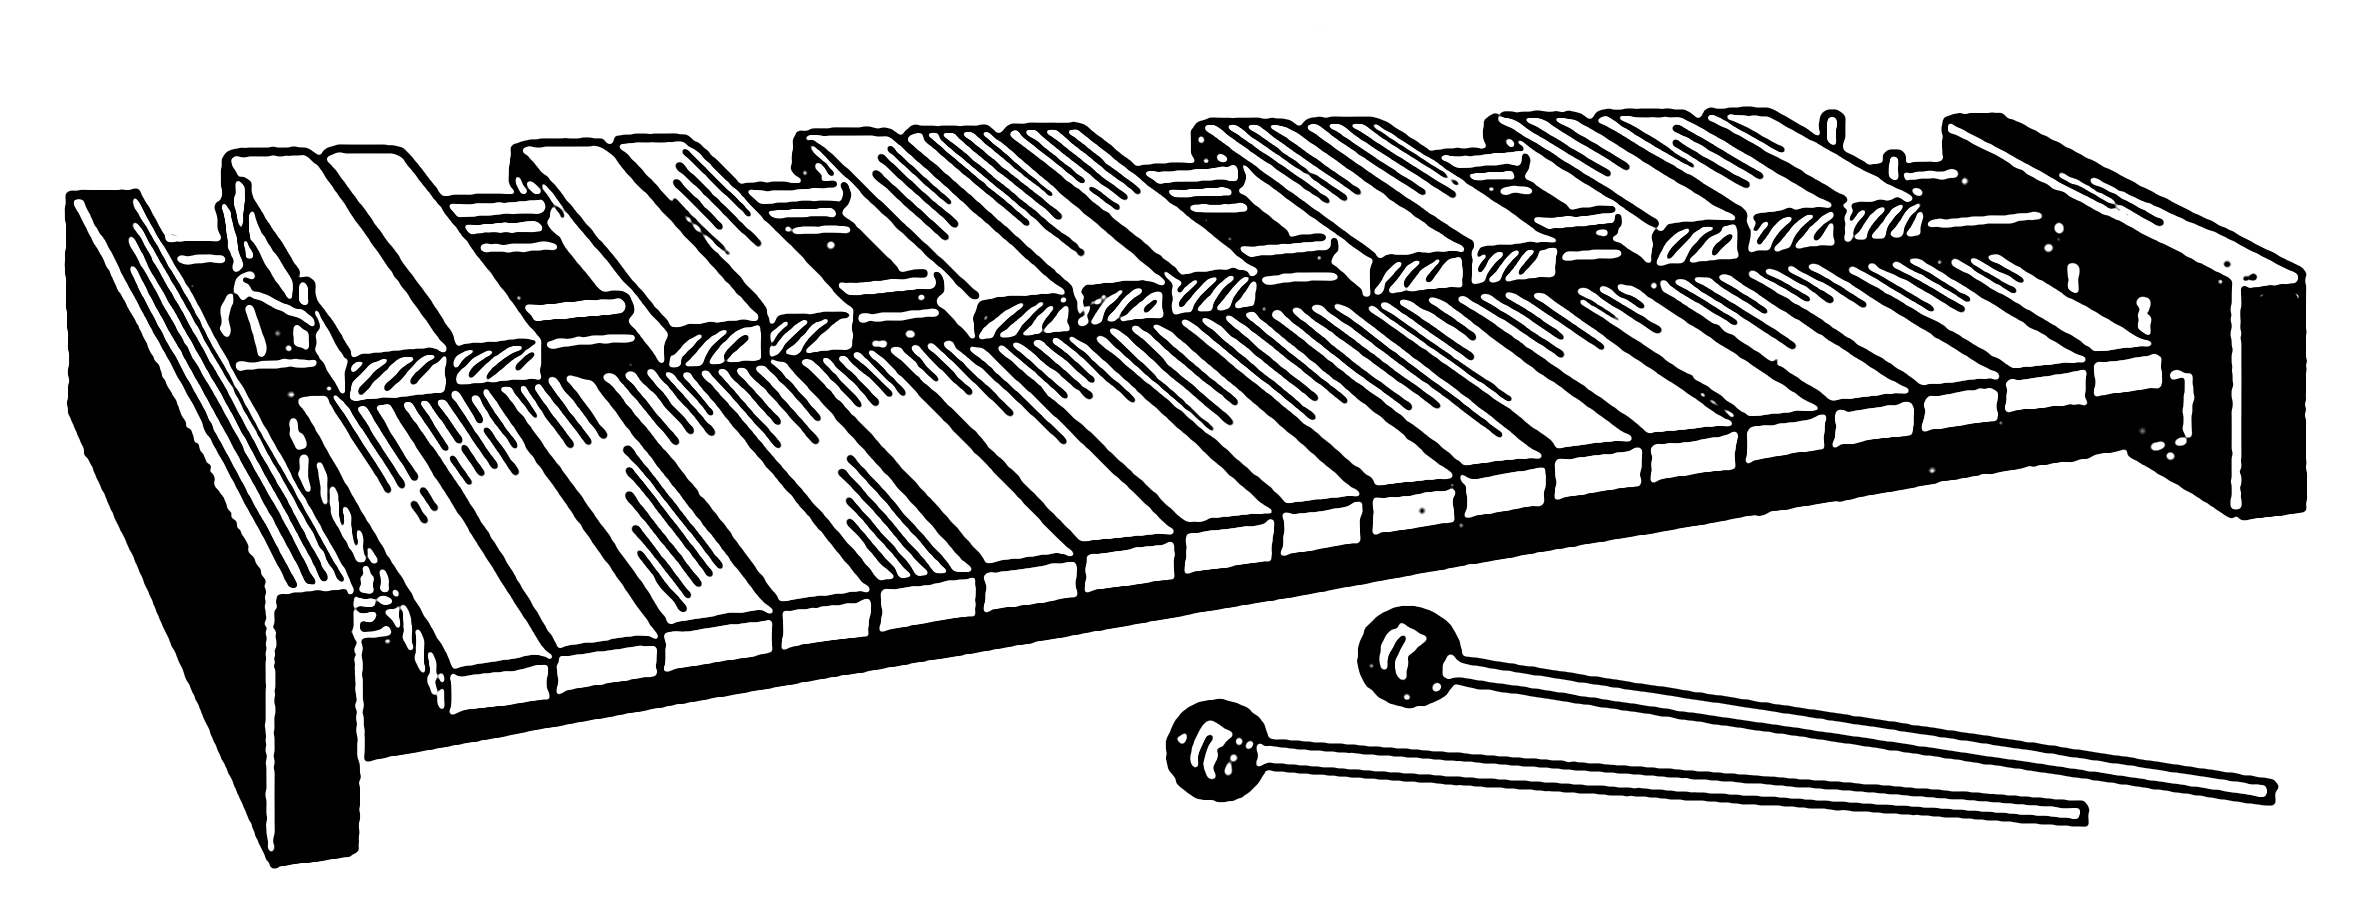 File:xylophone (Psf).png - Xylophone, Transparent background PNG HD thumbnail